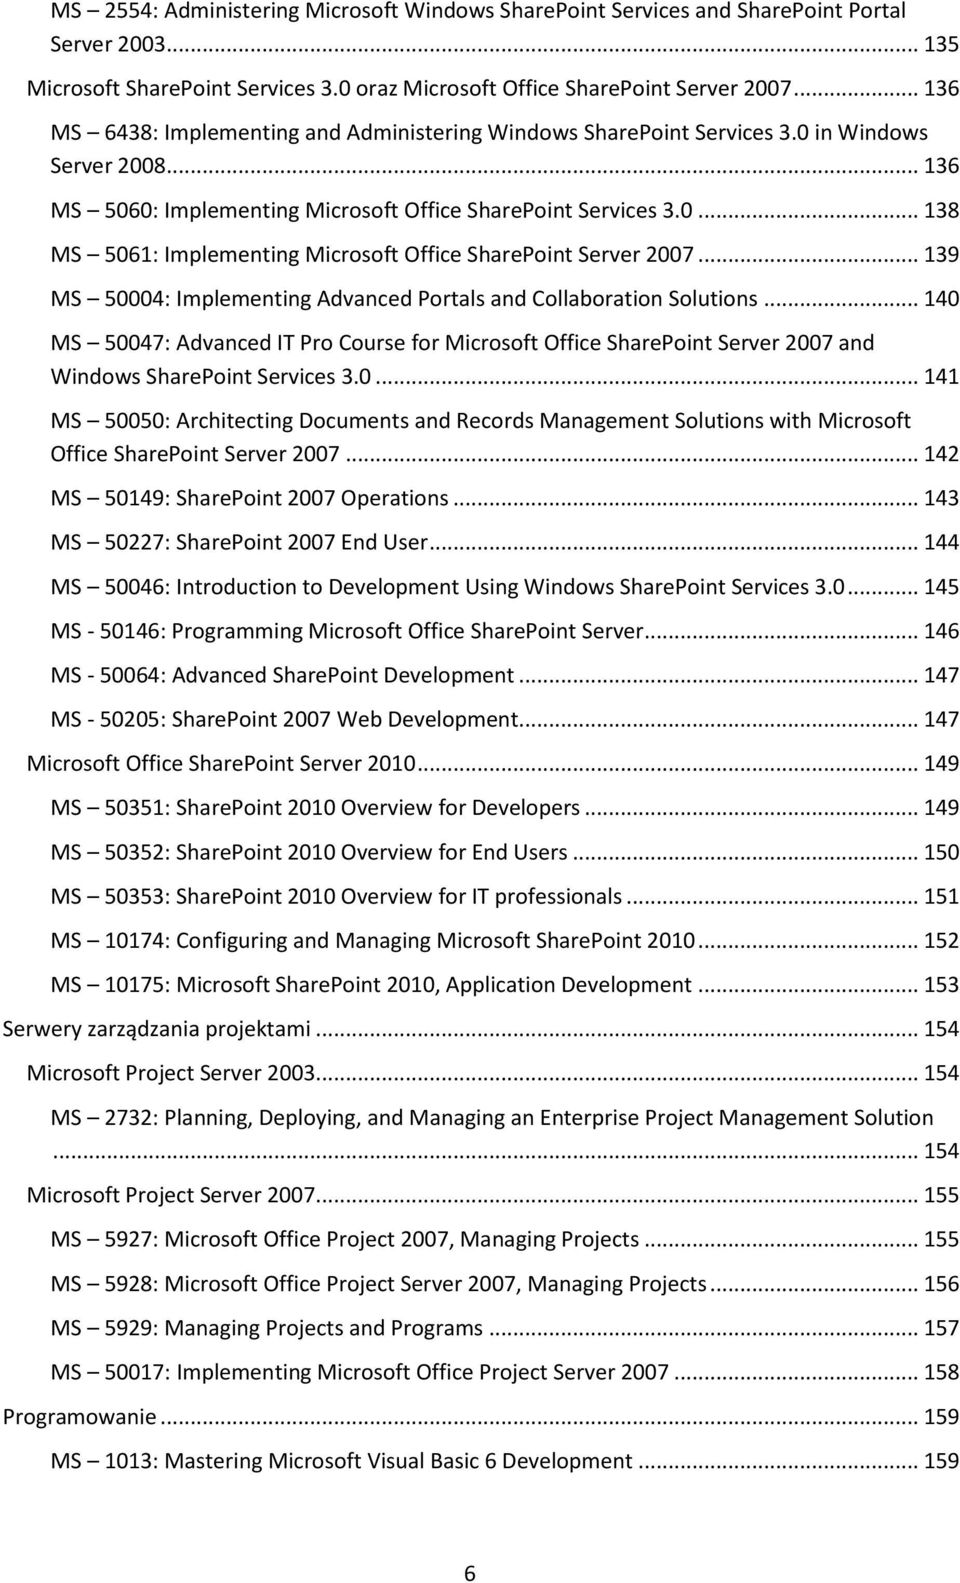 .. 139 MS 50004: Implementing Advanced Portals and Collaboration Solutions... 140 MS 50047: Advanced IT Pro Course for Microsoft Office SharePoint Server 2007 and Windows SharePoint Services 3.0... 141 MS 50050: Architecting Documents and Records Management Solutions with Microsoft Office SharePoint Server 2007.